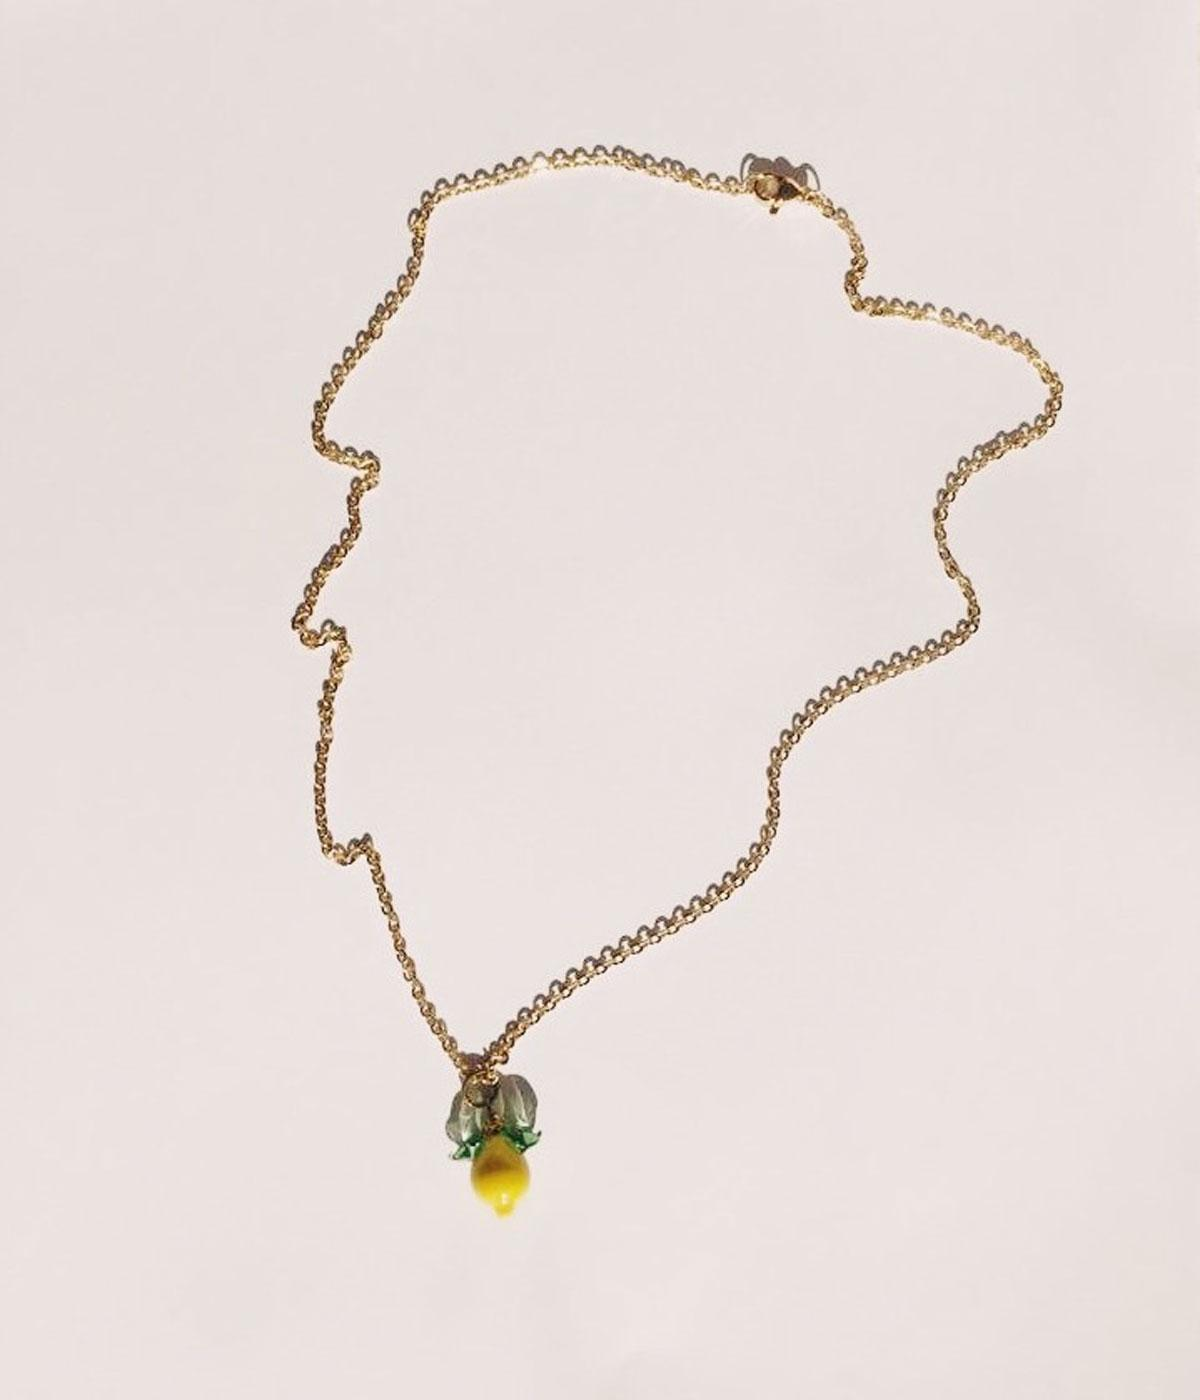 Gold chain with a yellow lemon pendant